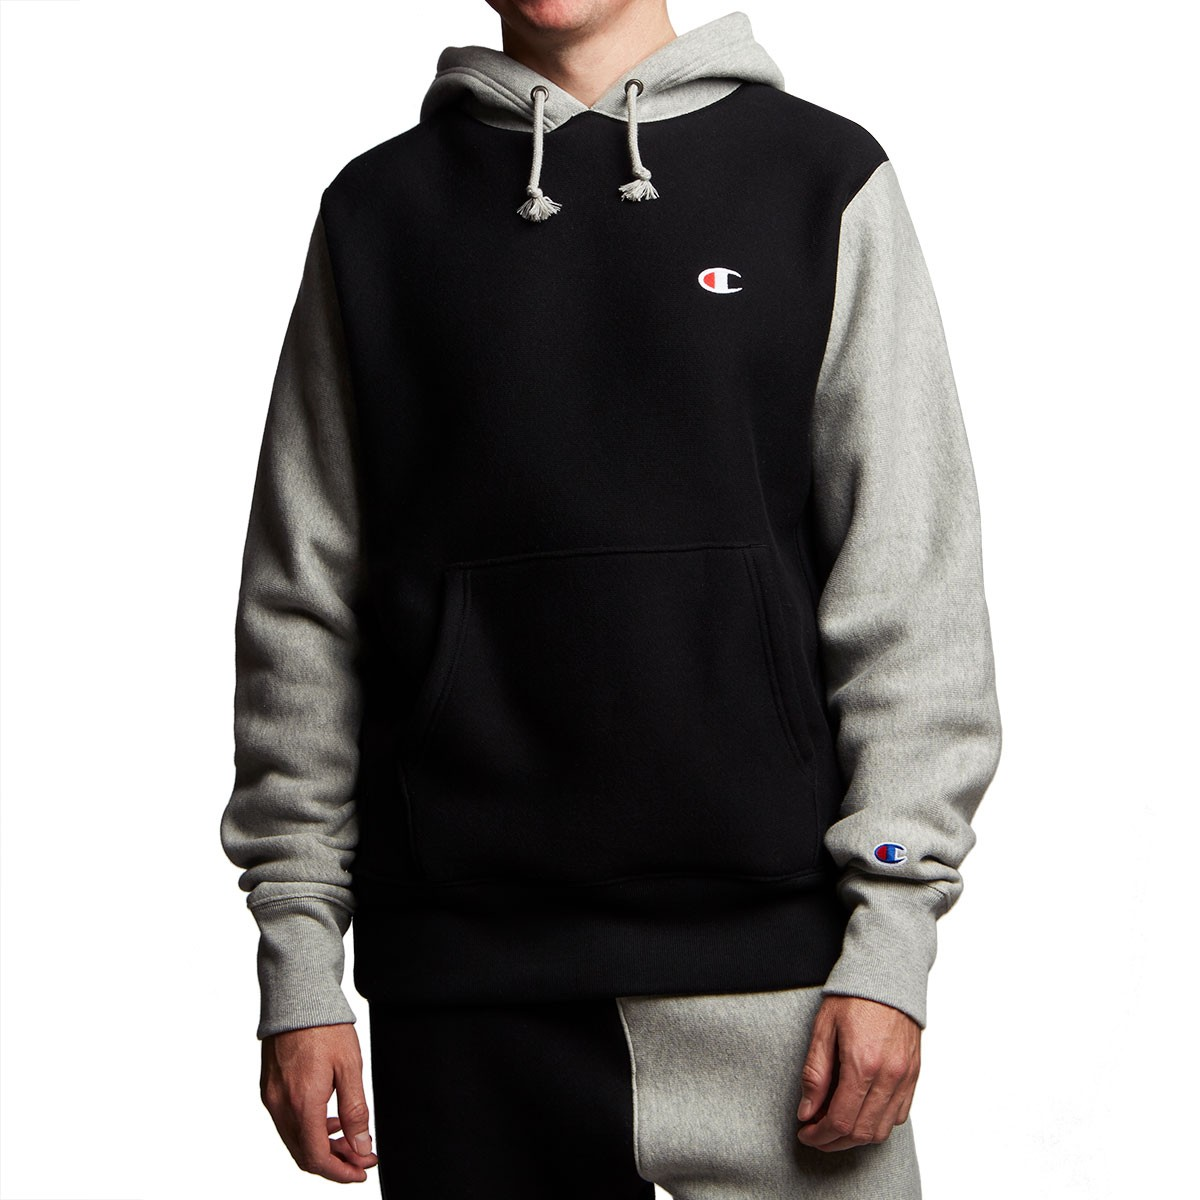 a446ecab4 Champion Reverse Weave Colorblock Pullover Hoodie - Black/Oxford ...